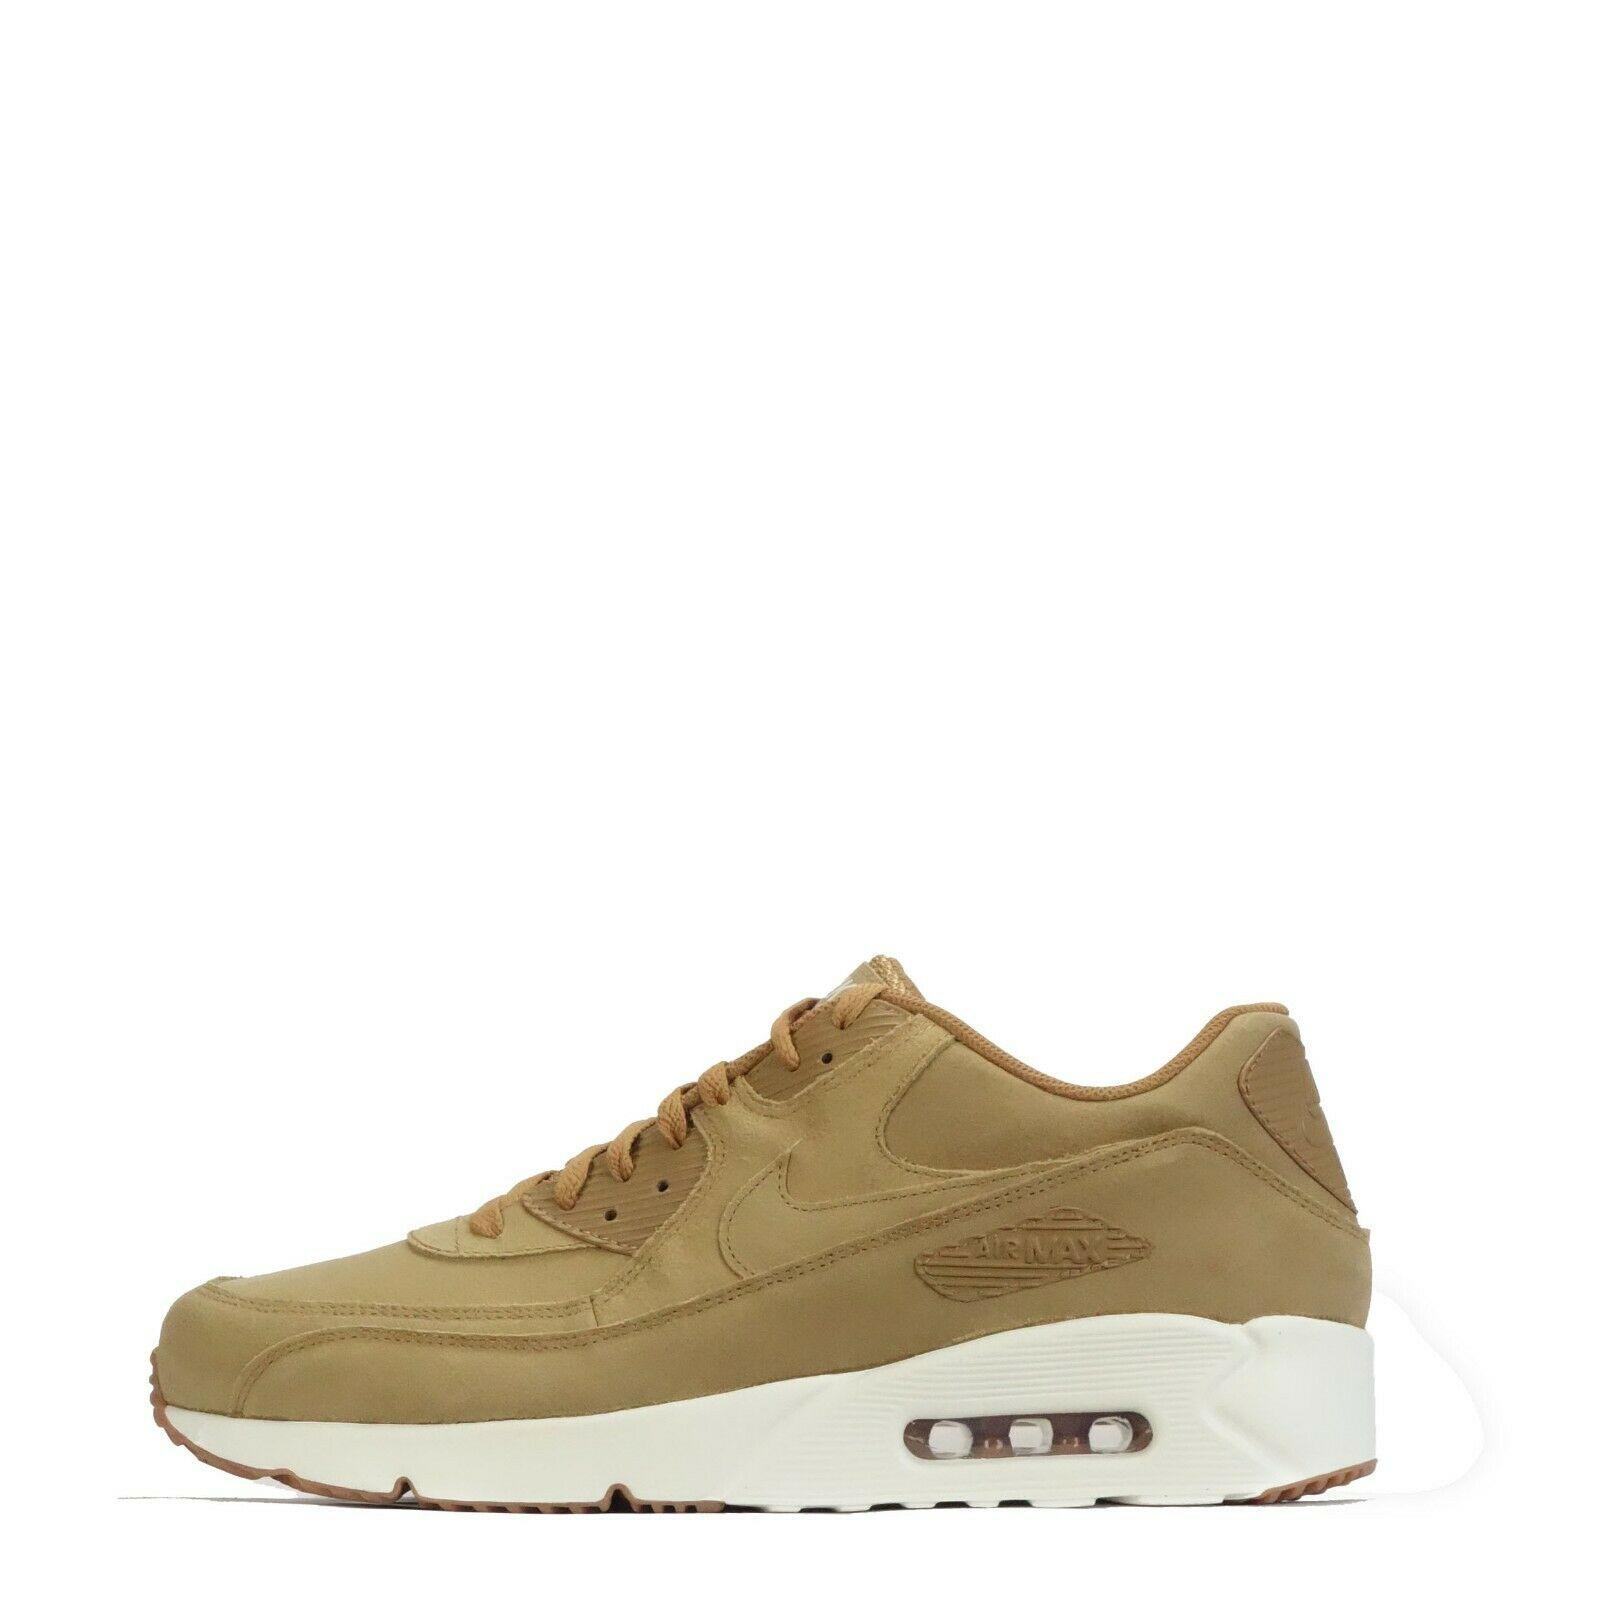 Nike Air Max 90 Ultra 2.0 Leather Men's Trainers, Flax Sail